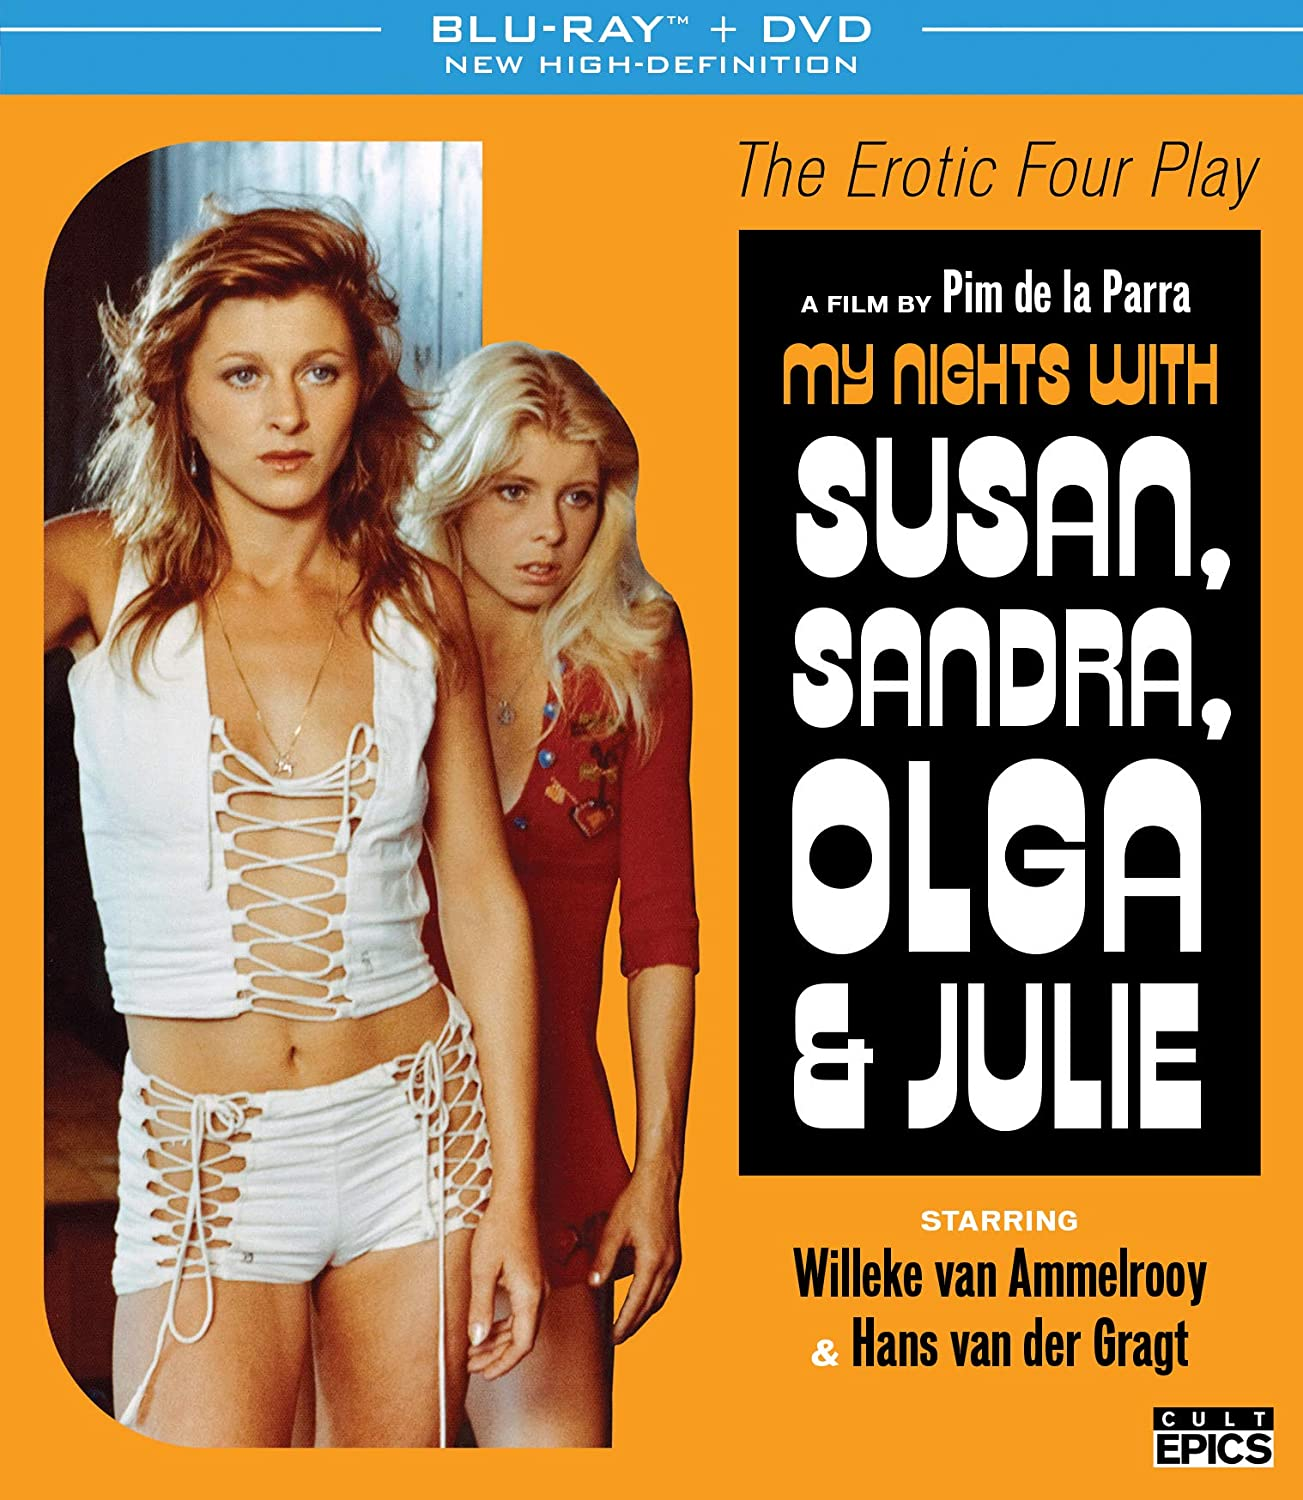 My Nights with Susan Don't miss the campaign Blu-ray Julie Sandra Luxury goods Olga